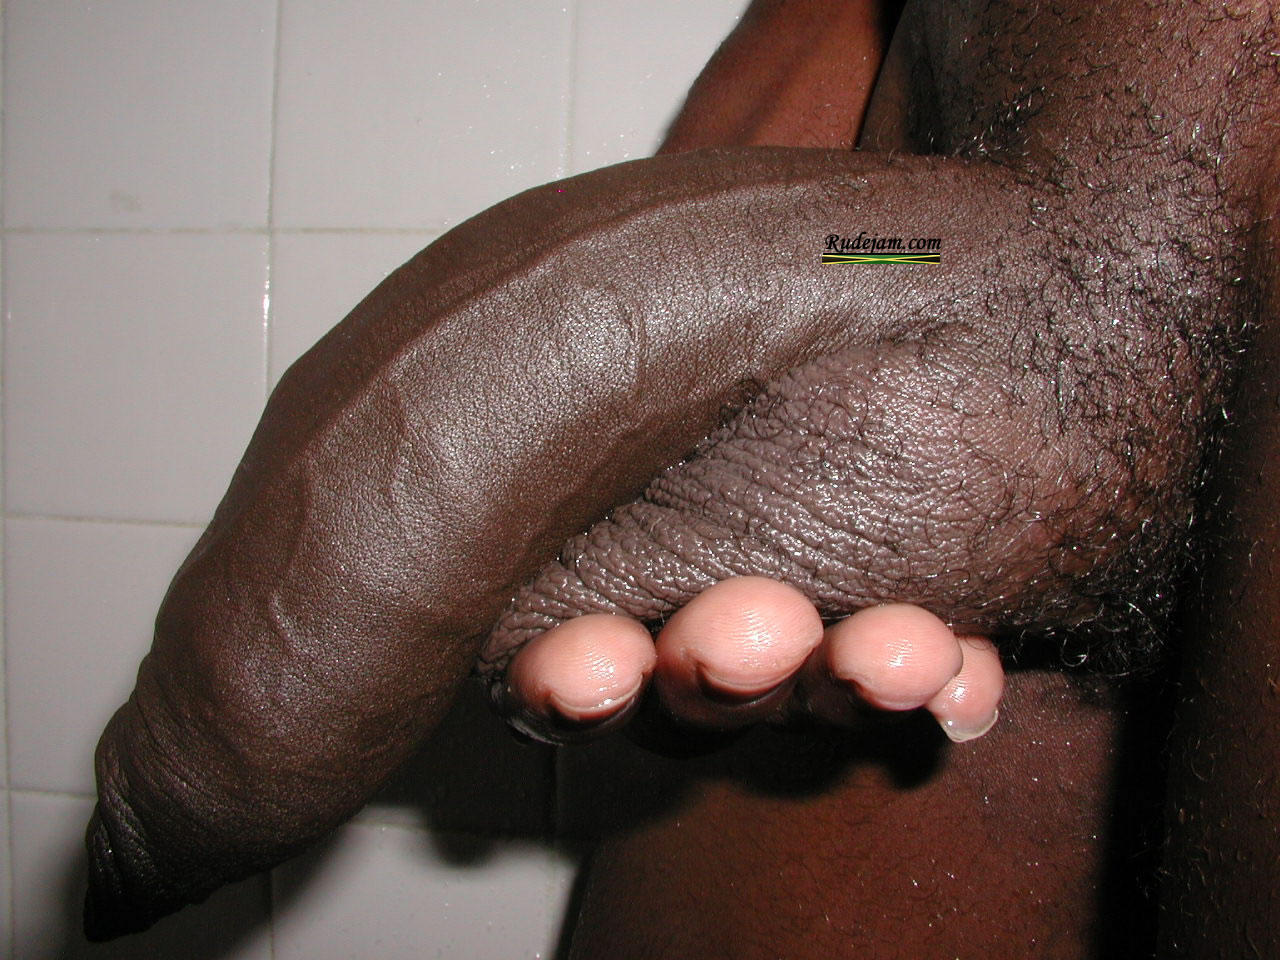 Big Black Dick For Free 89